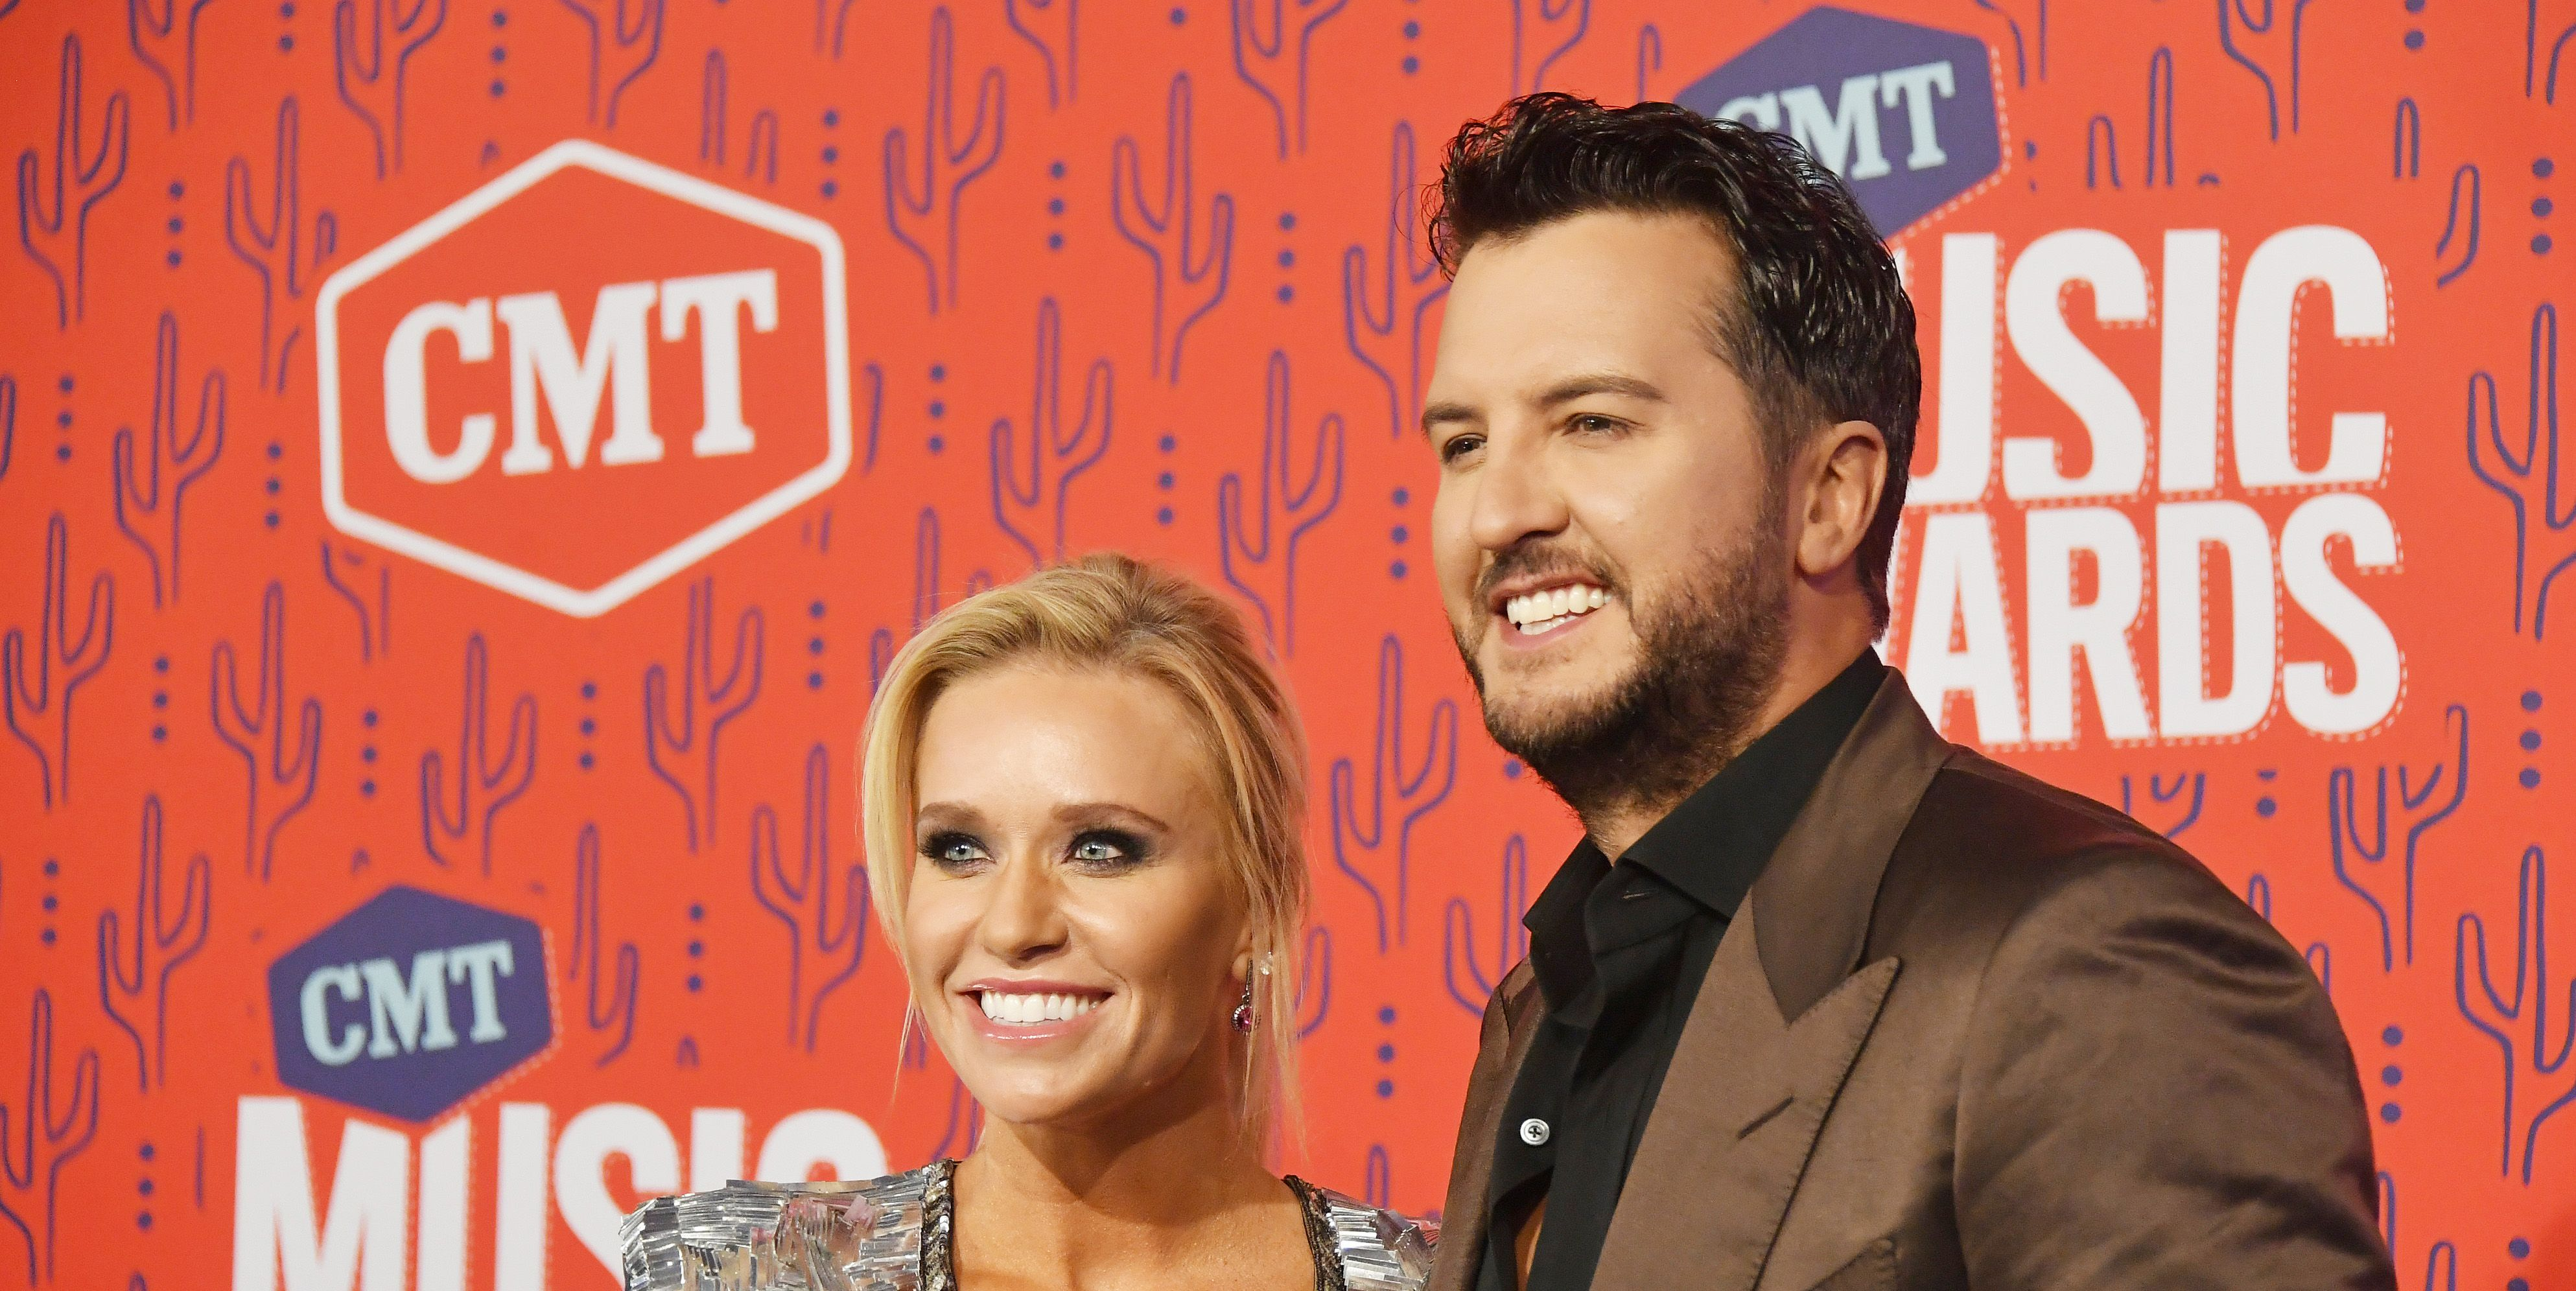 Luke Bryan Played a Prank on His Wife and Posted it to Instagram